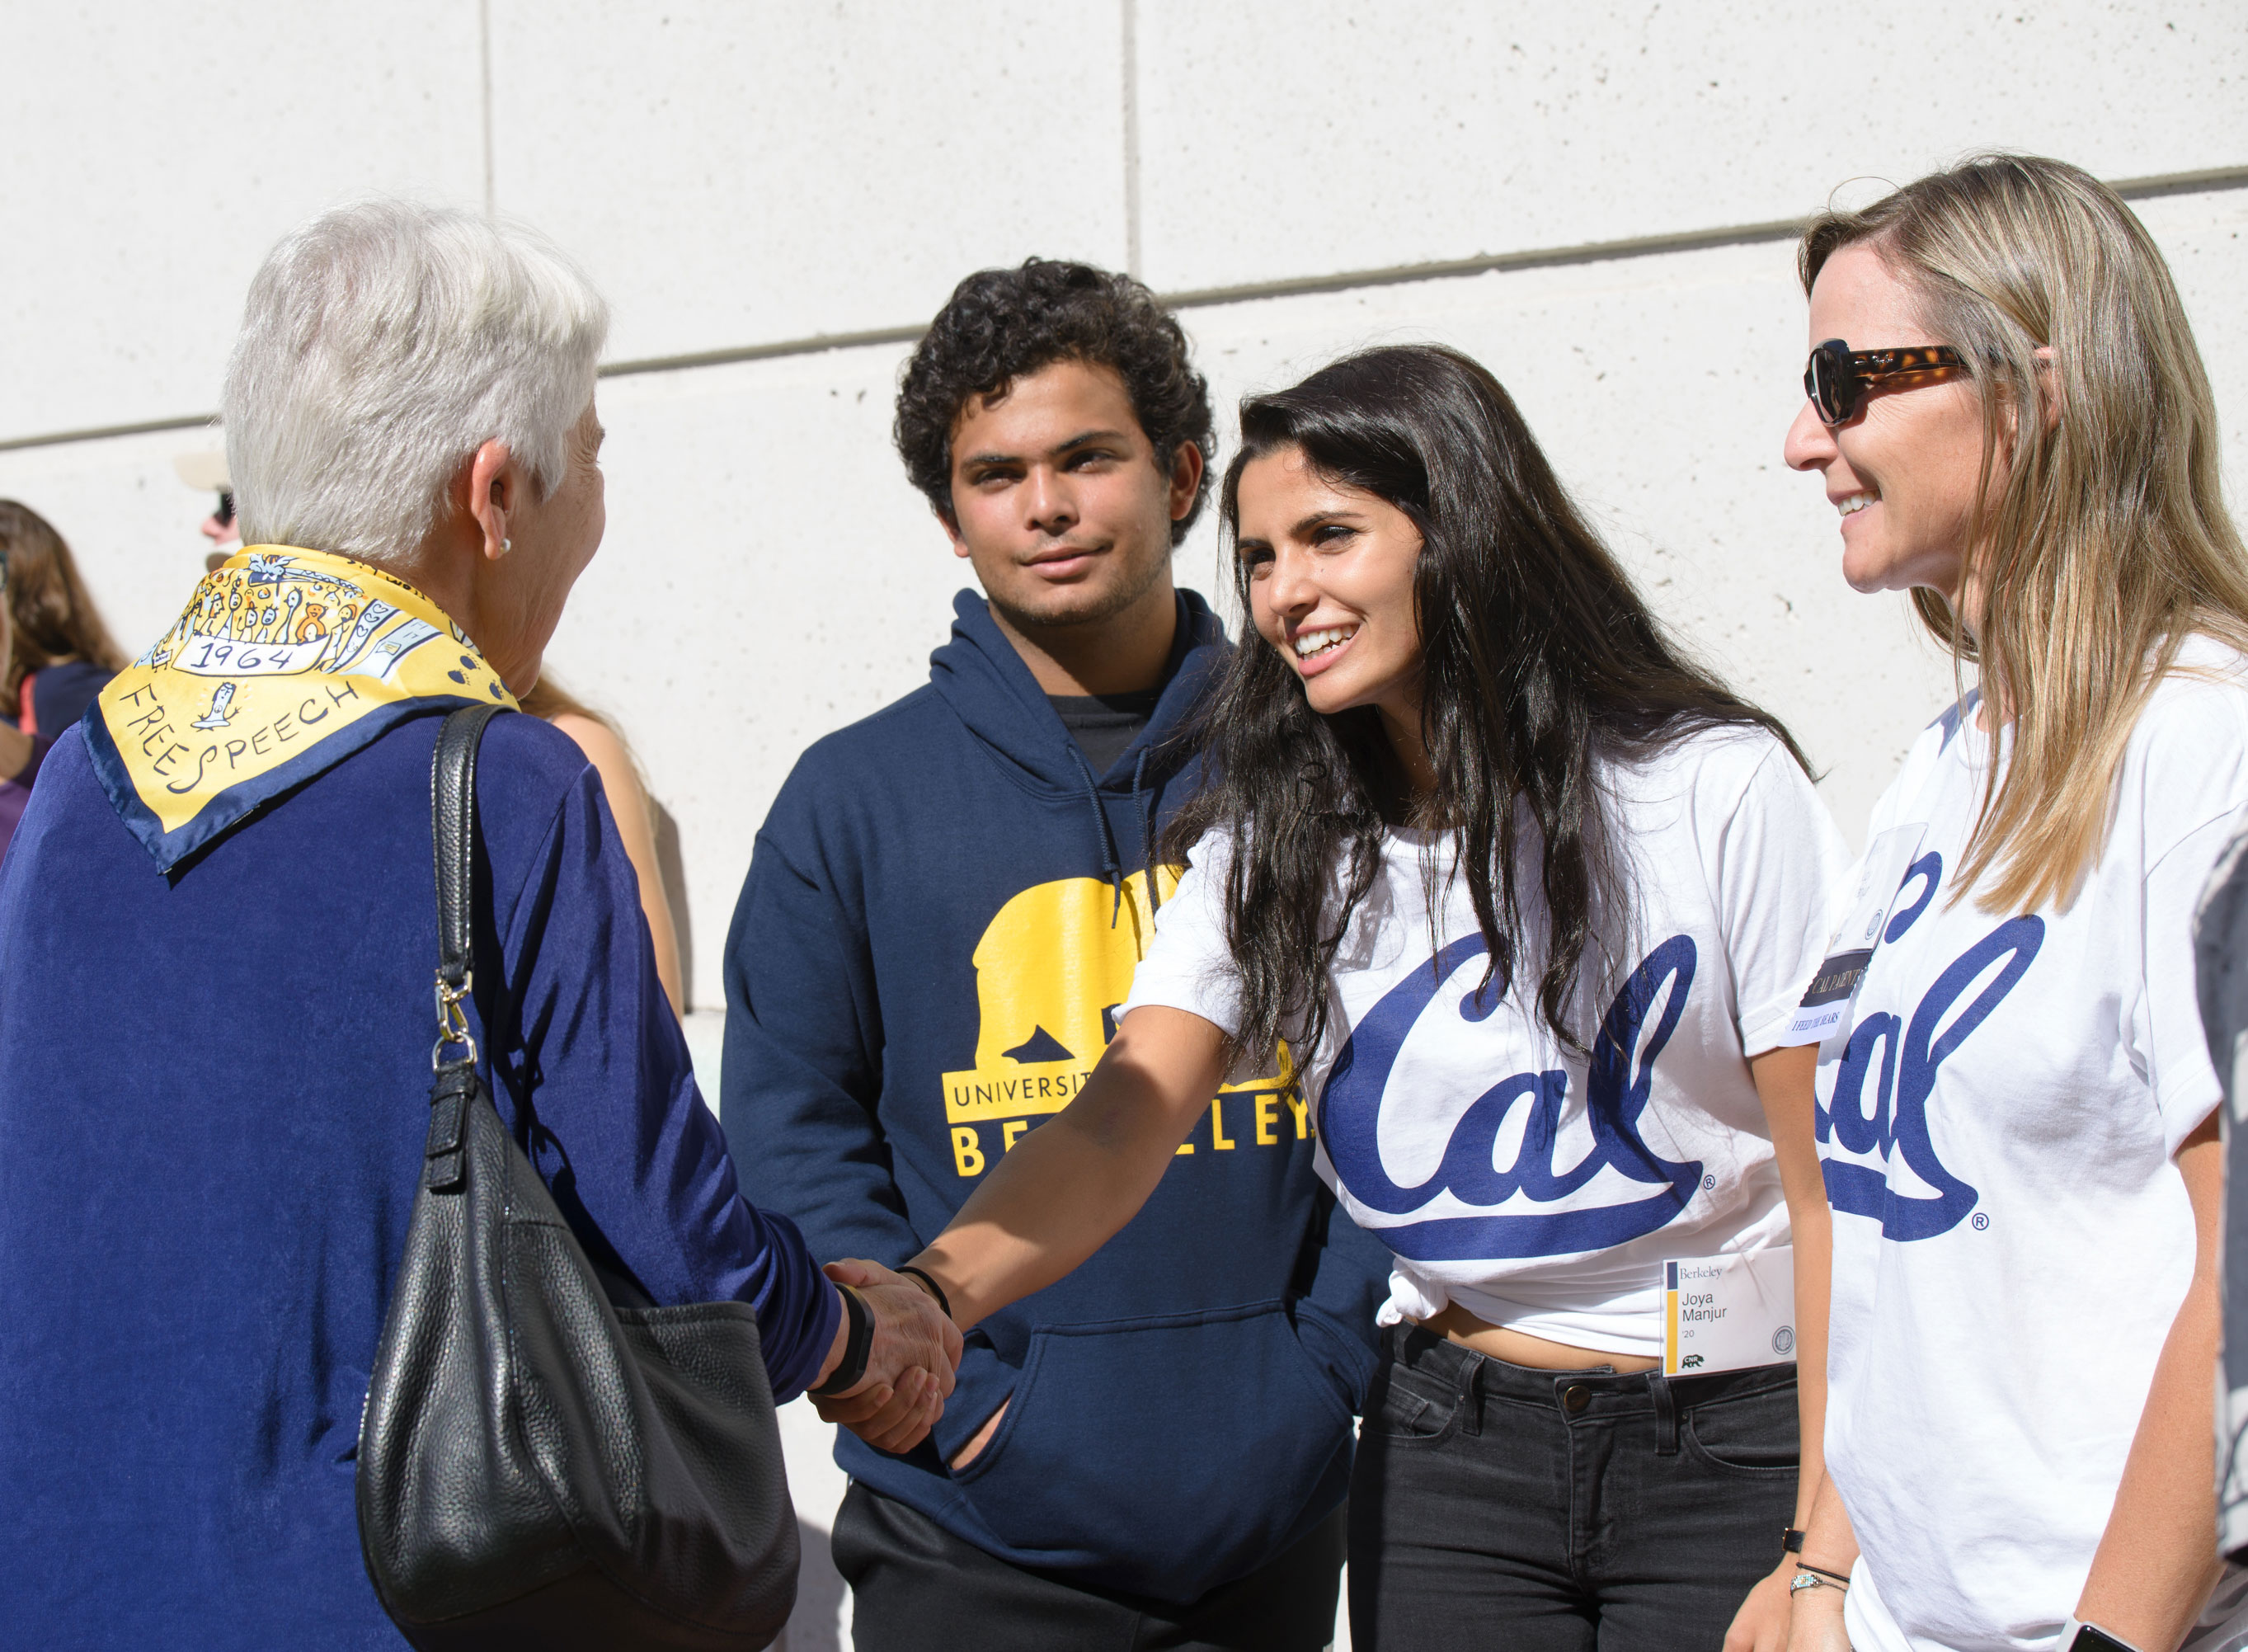 Cal student shaking hands with Chancellor Carol Christ